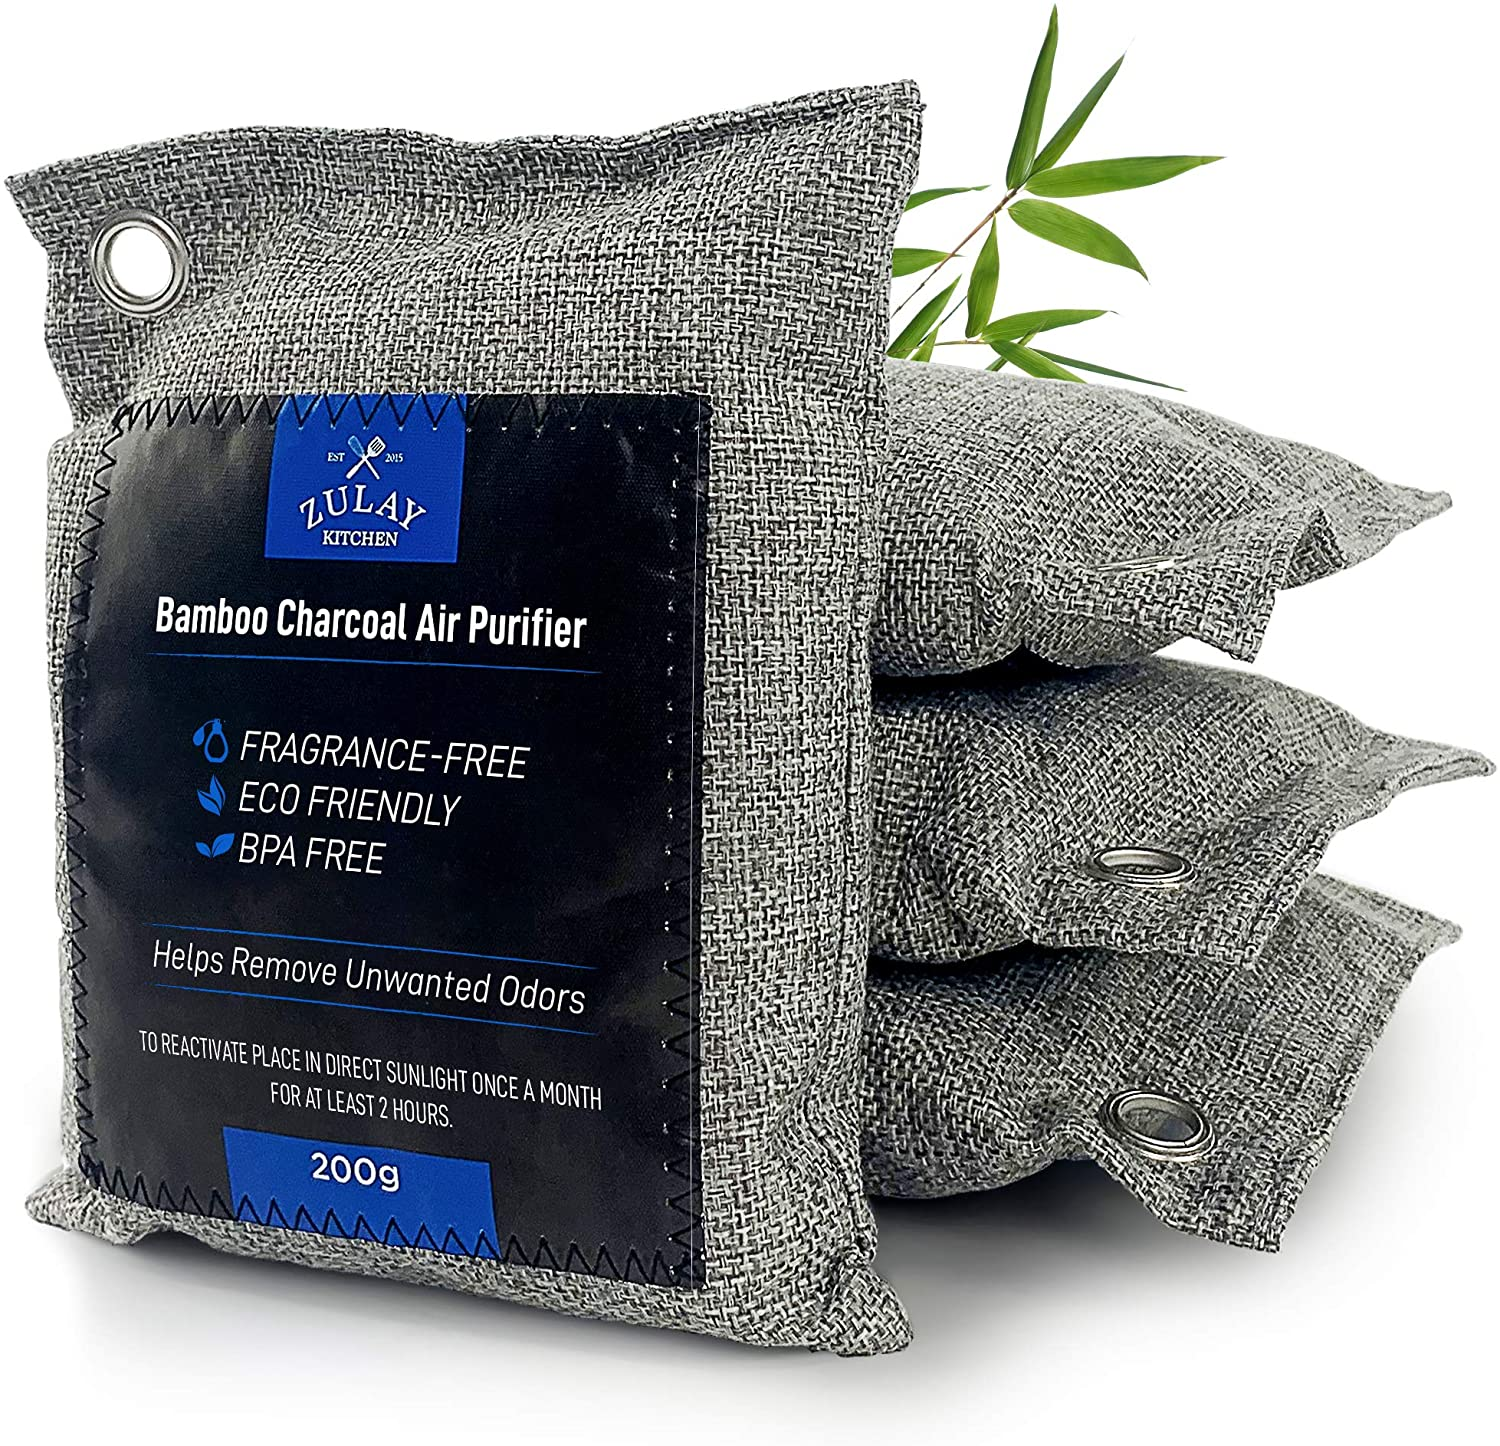 Zulay 4 Pack 100% Bamboo Charcoal Air Purifying Bags - Activated Charcoal Odor Absorber - Charcoal Bags 200g Air Fresheners & Odor Handler for Unpleasant Smells